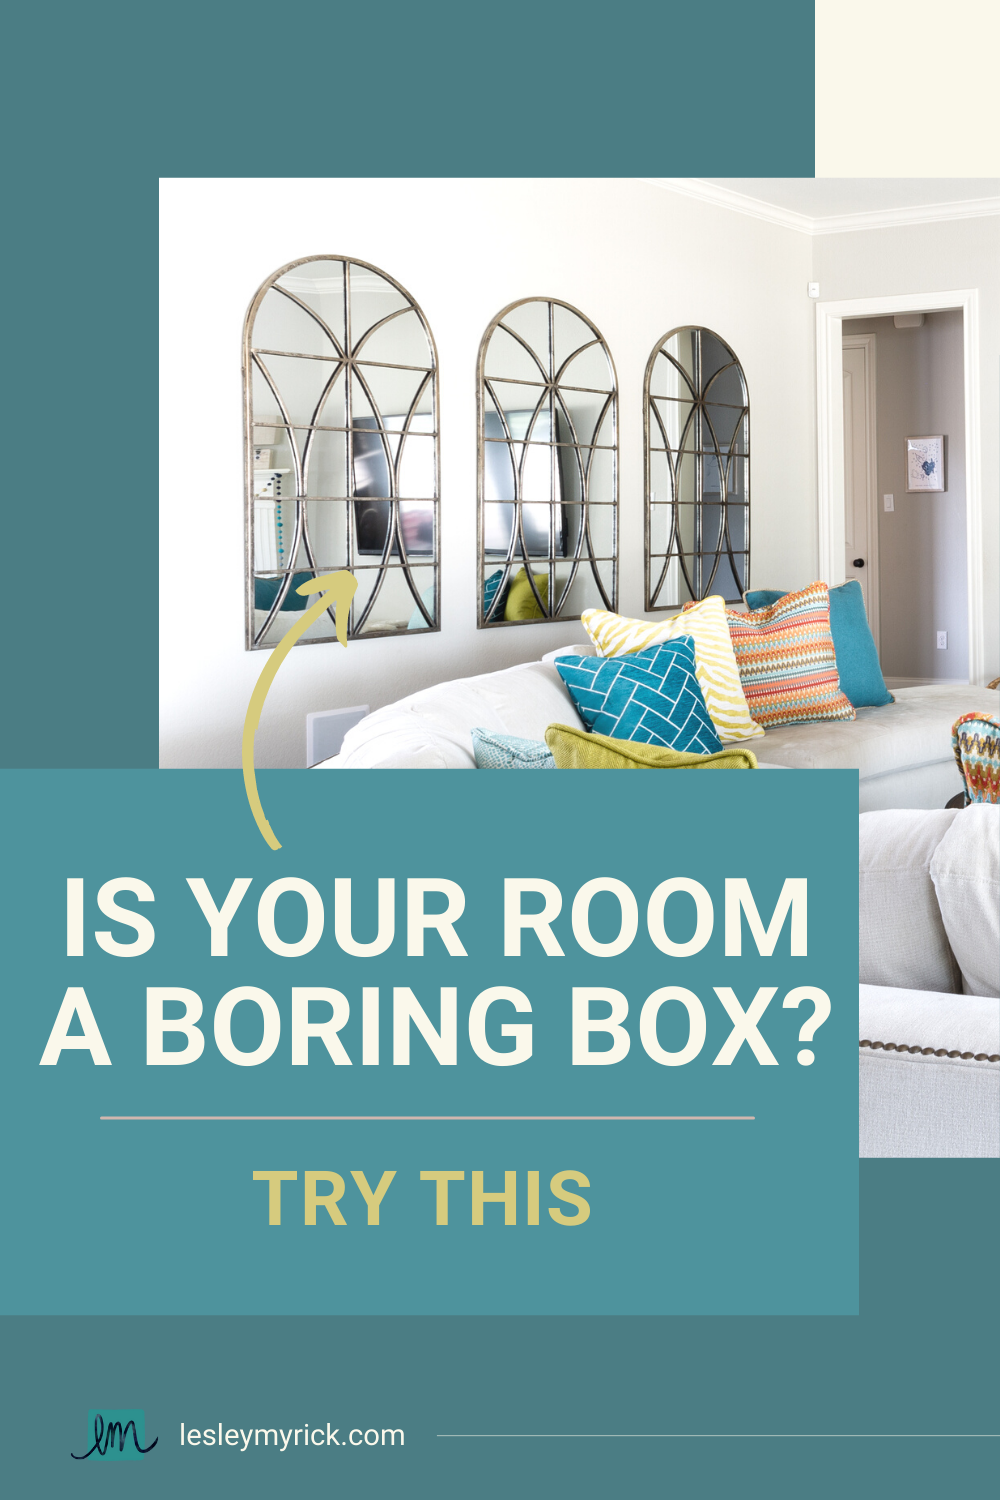 Is your room a boring box? Try this!